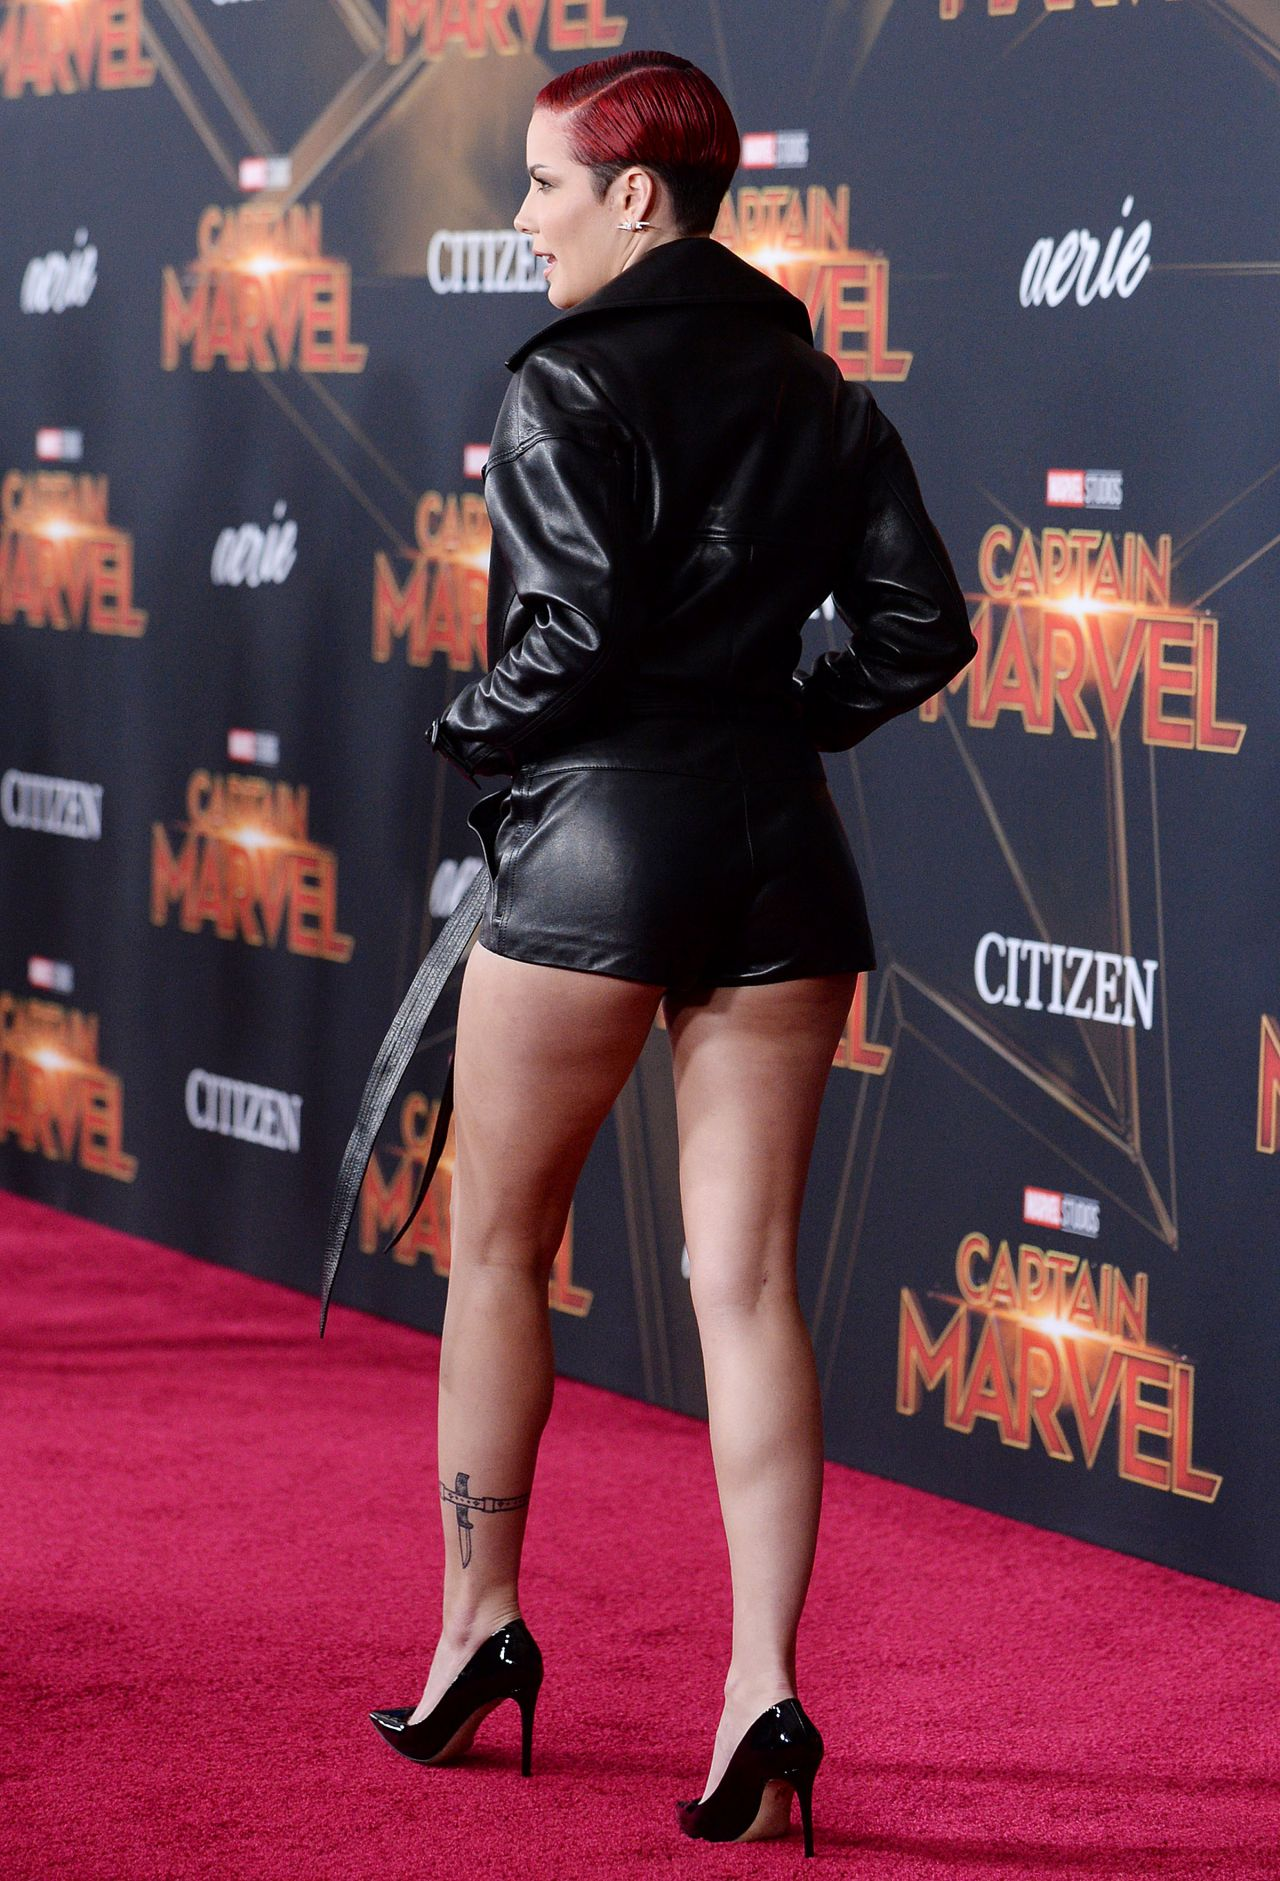 Halsey Captain Marvel Premiere In Hollywood